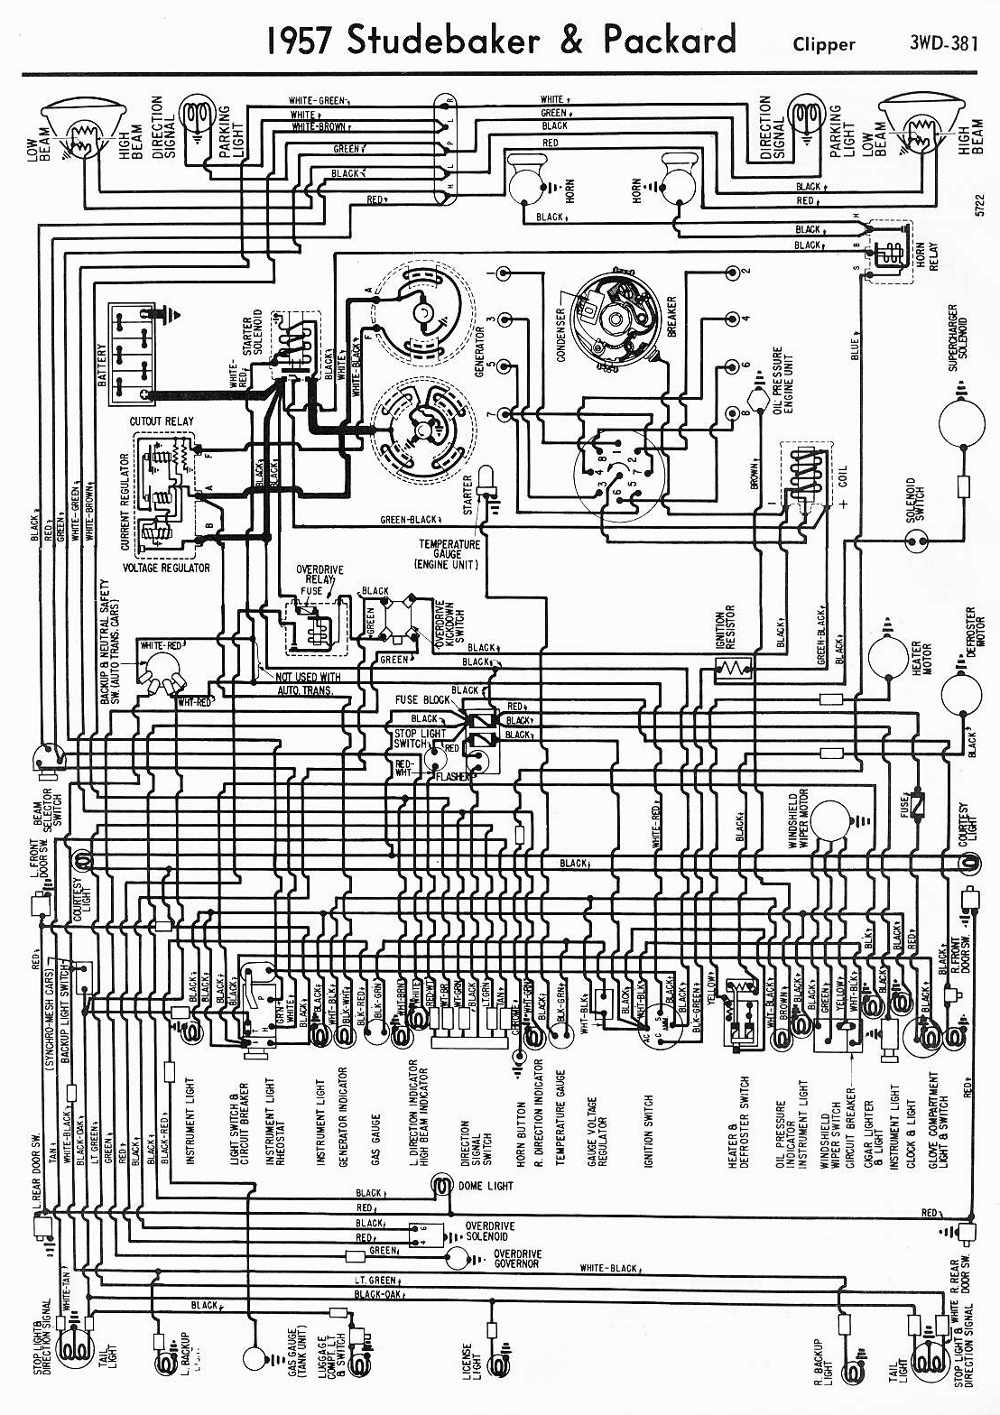 small resolution of 1948 packard wiring diagram wiring diagram pictures u2022 rh mapavick co uk 1959 studebaker pickup wiring